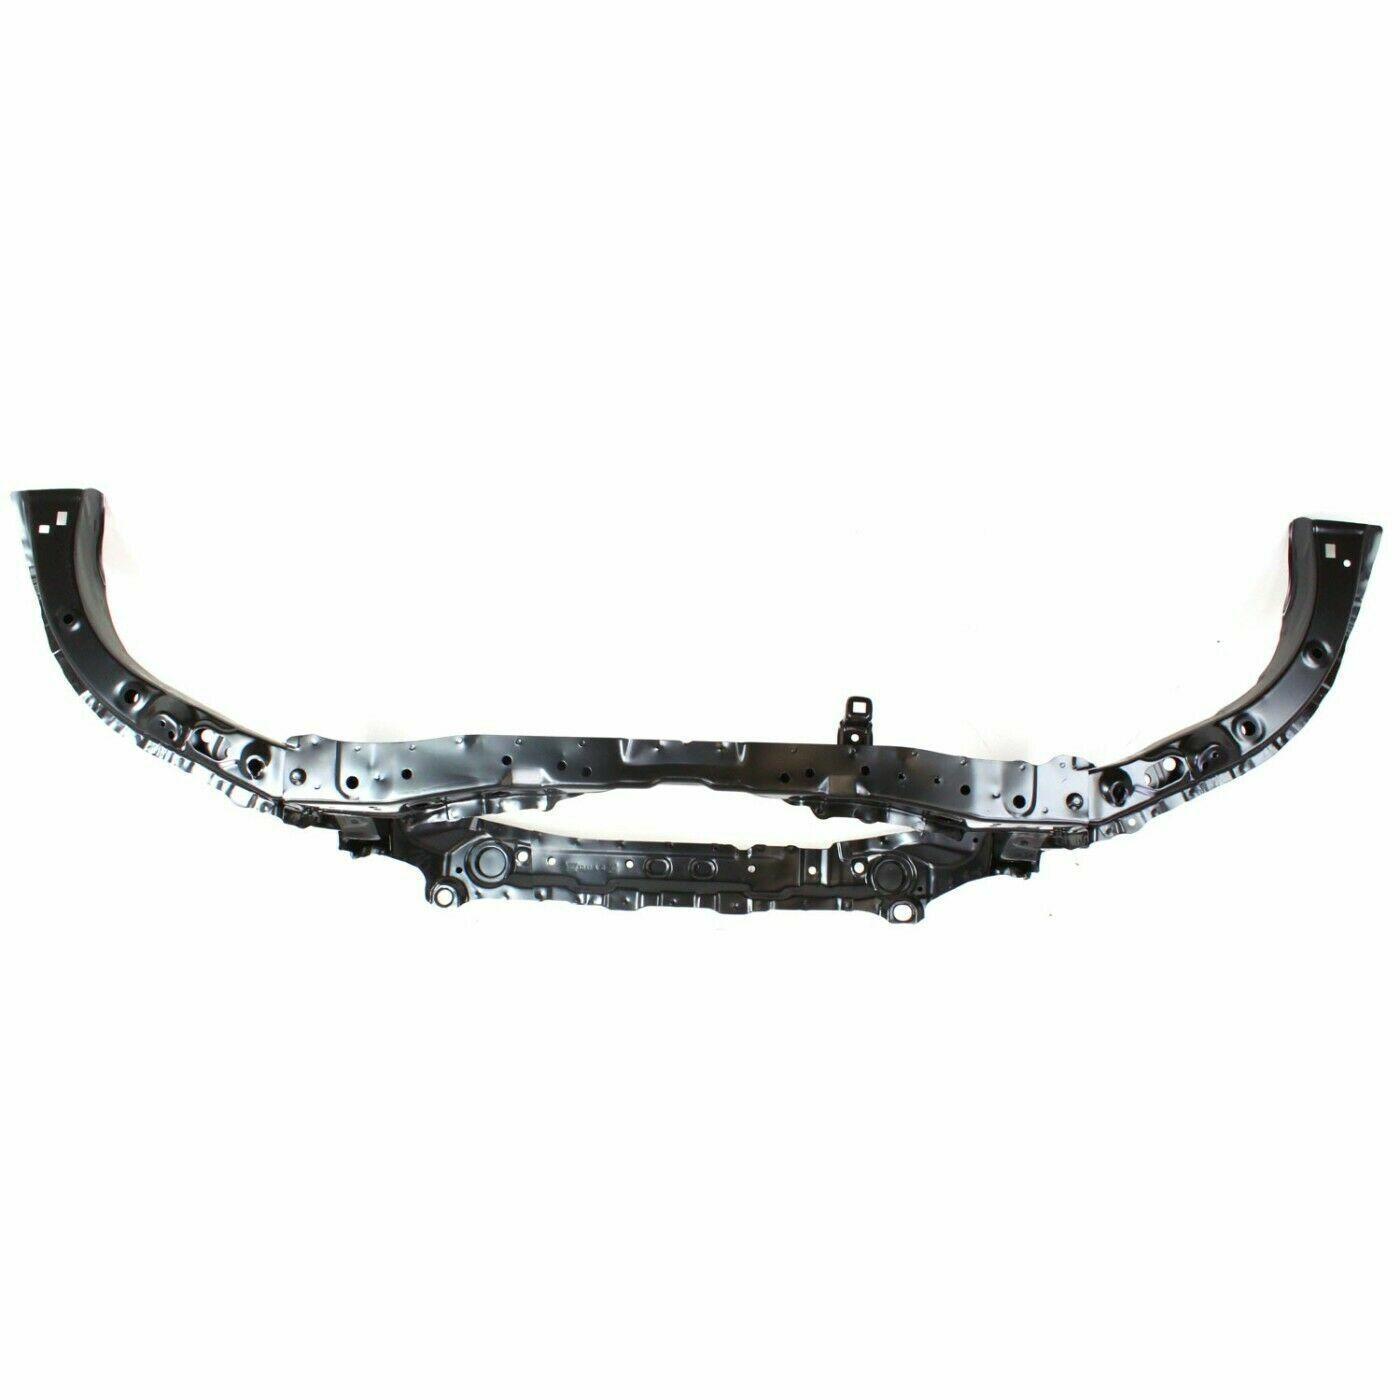 Radiator Support Assembly For Honda Civic Coupe